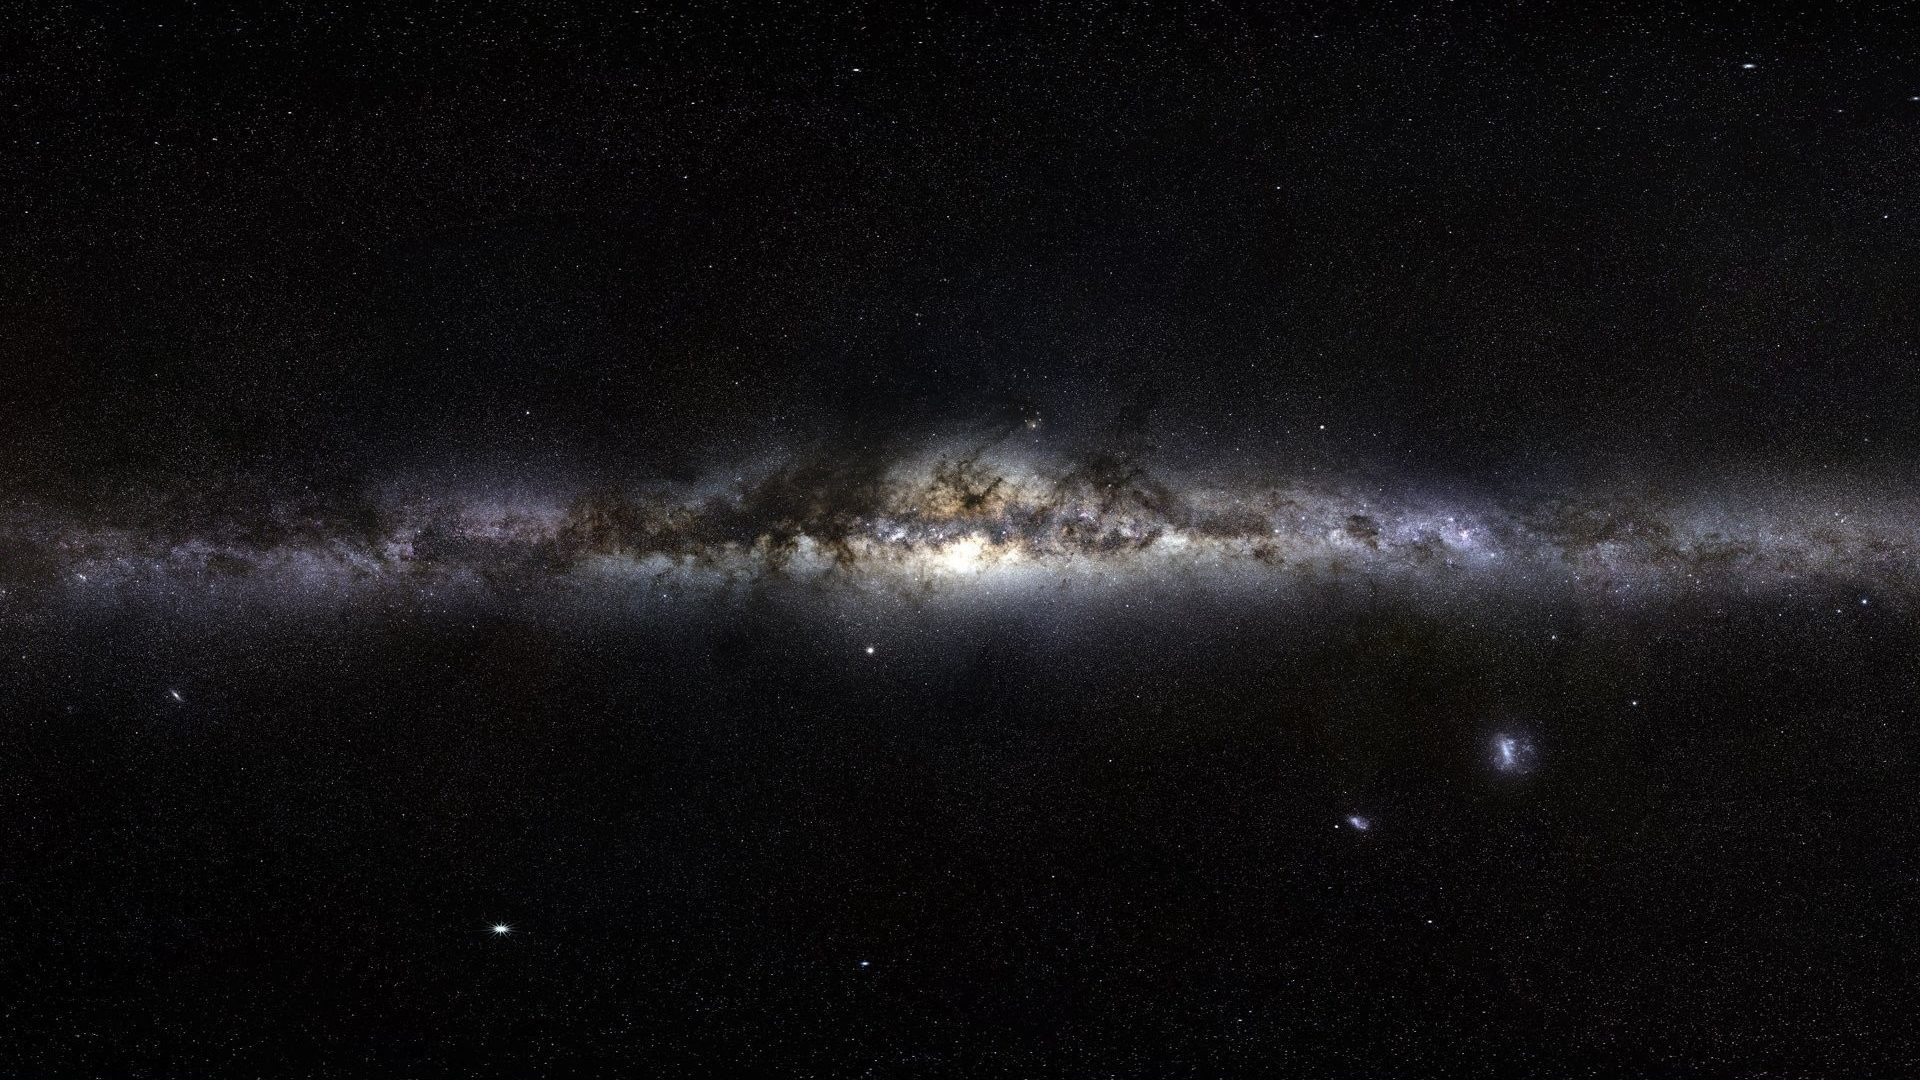 Galaxies Tag – Stars Galaxies Scape Space Real Dark Hubble Telescope Nature  Wallpaper 1080p Hd for